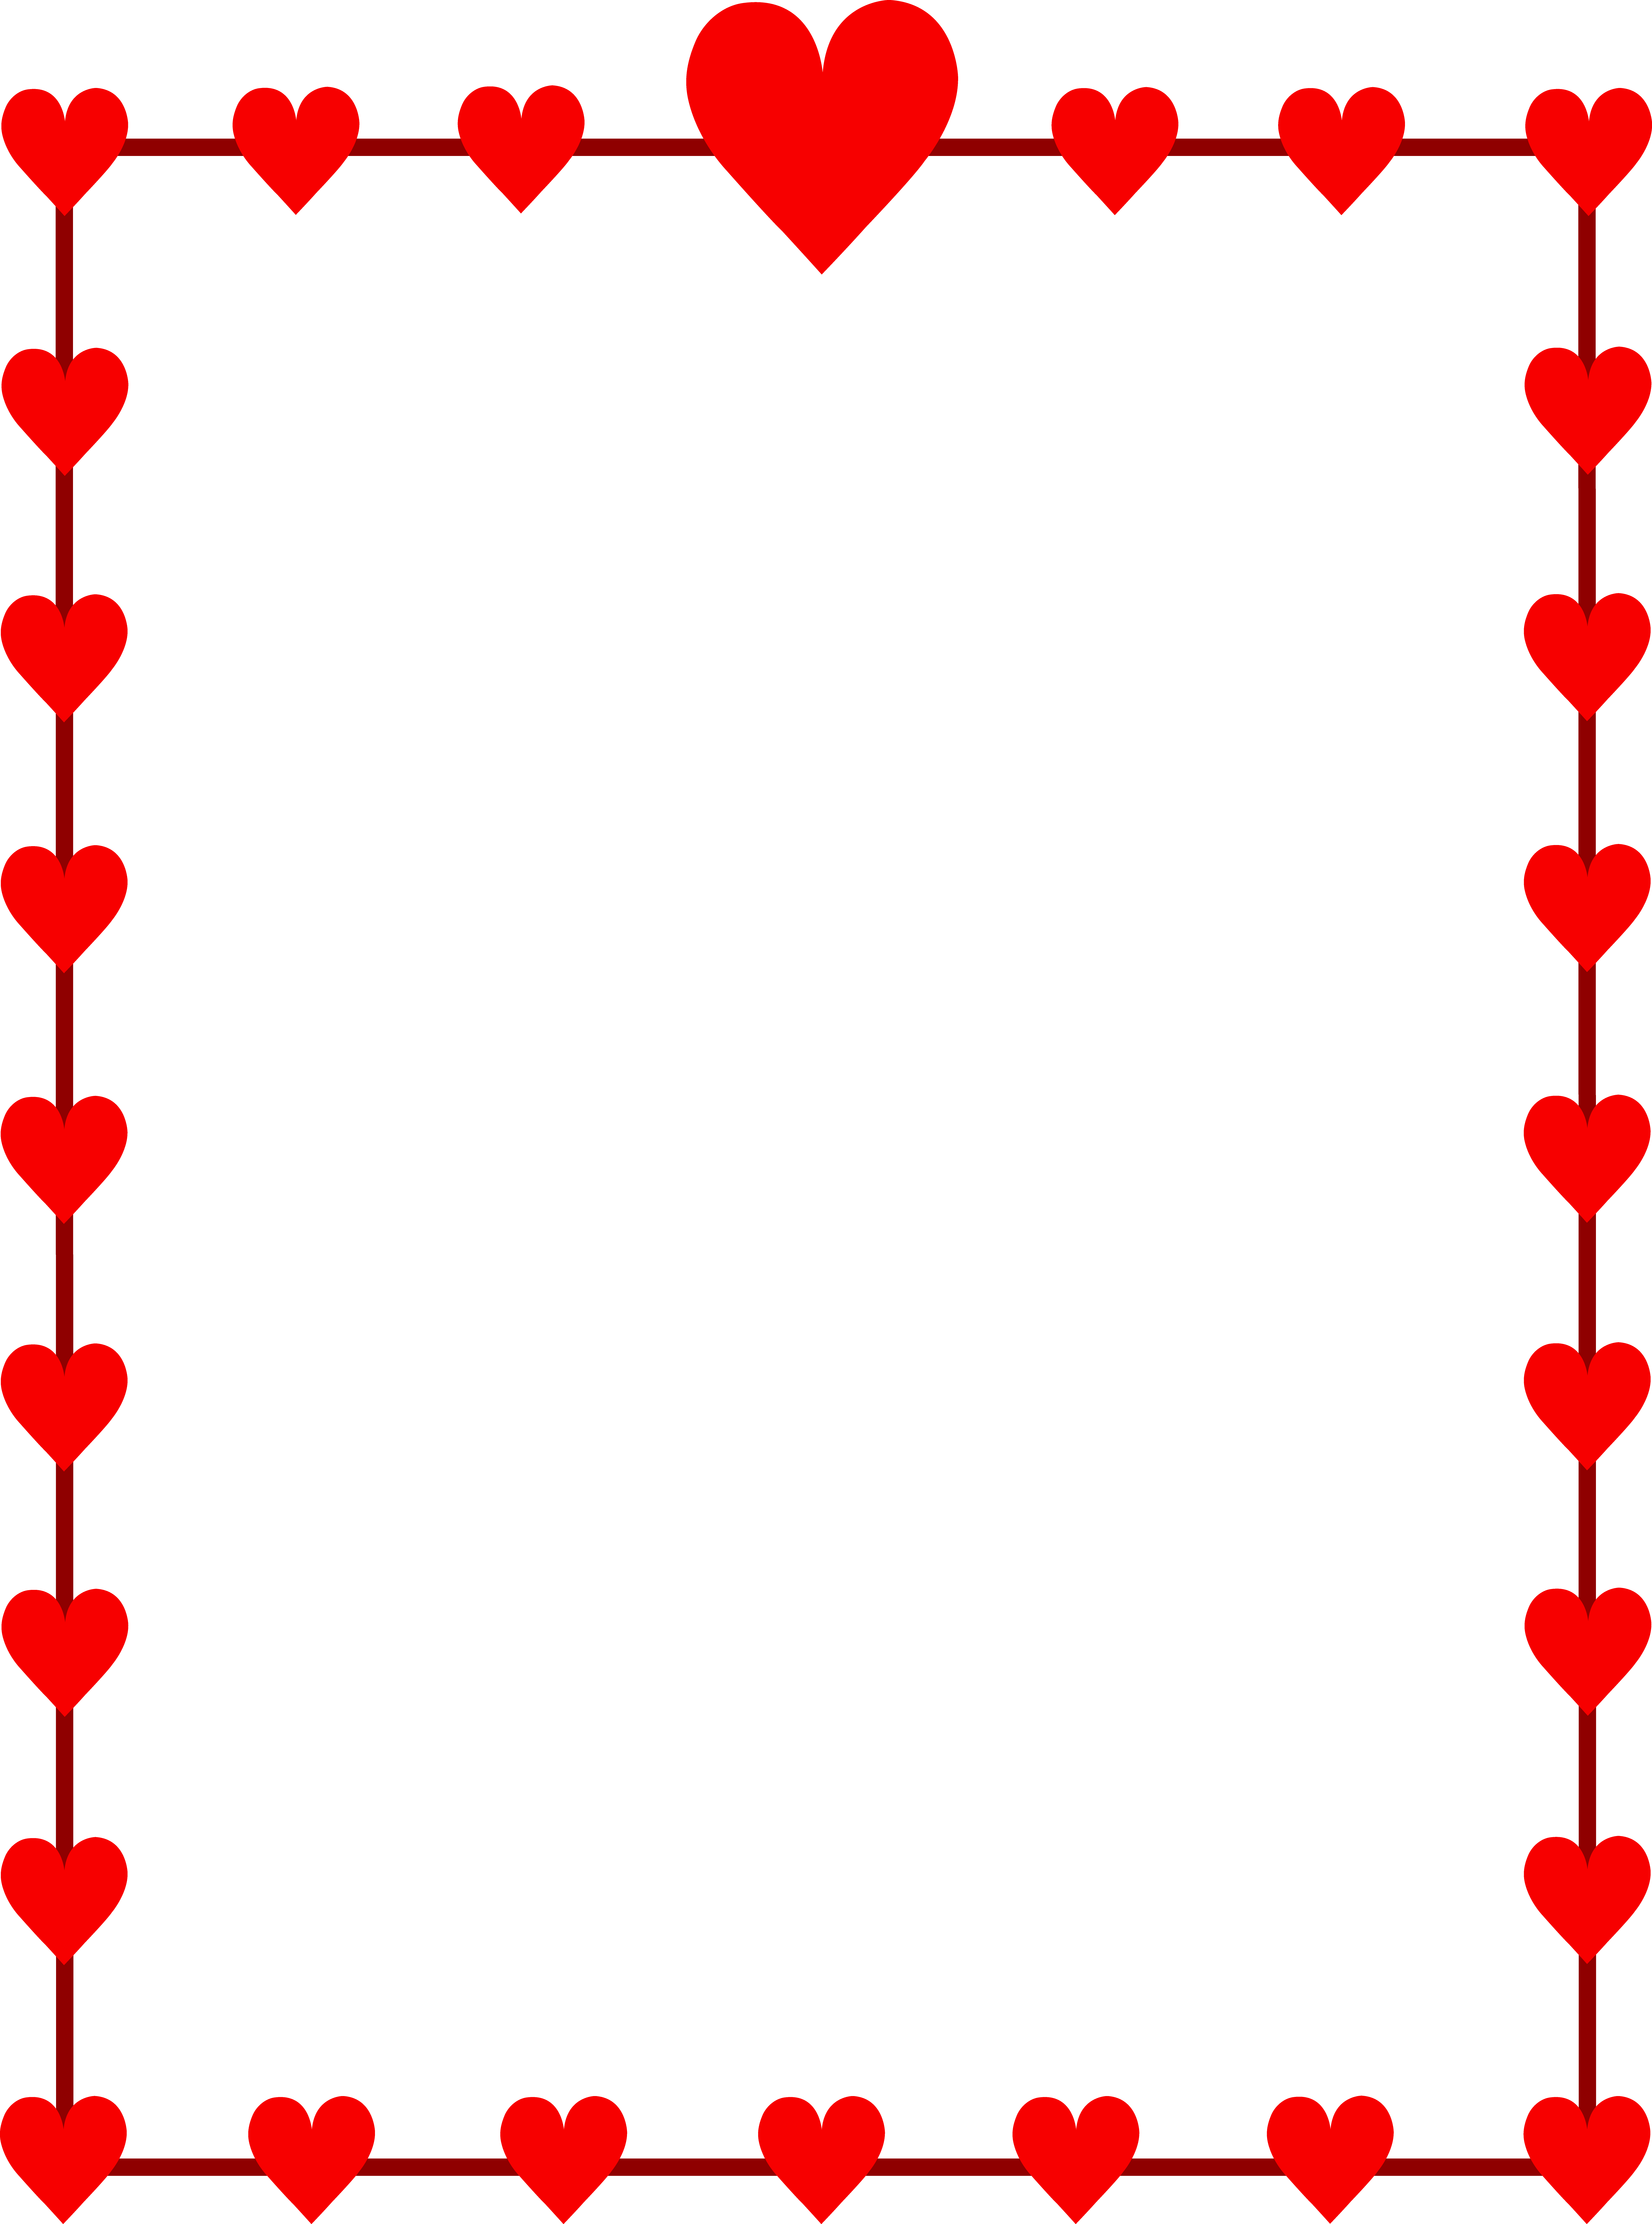 Clipart border red. Hearts frame free clip